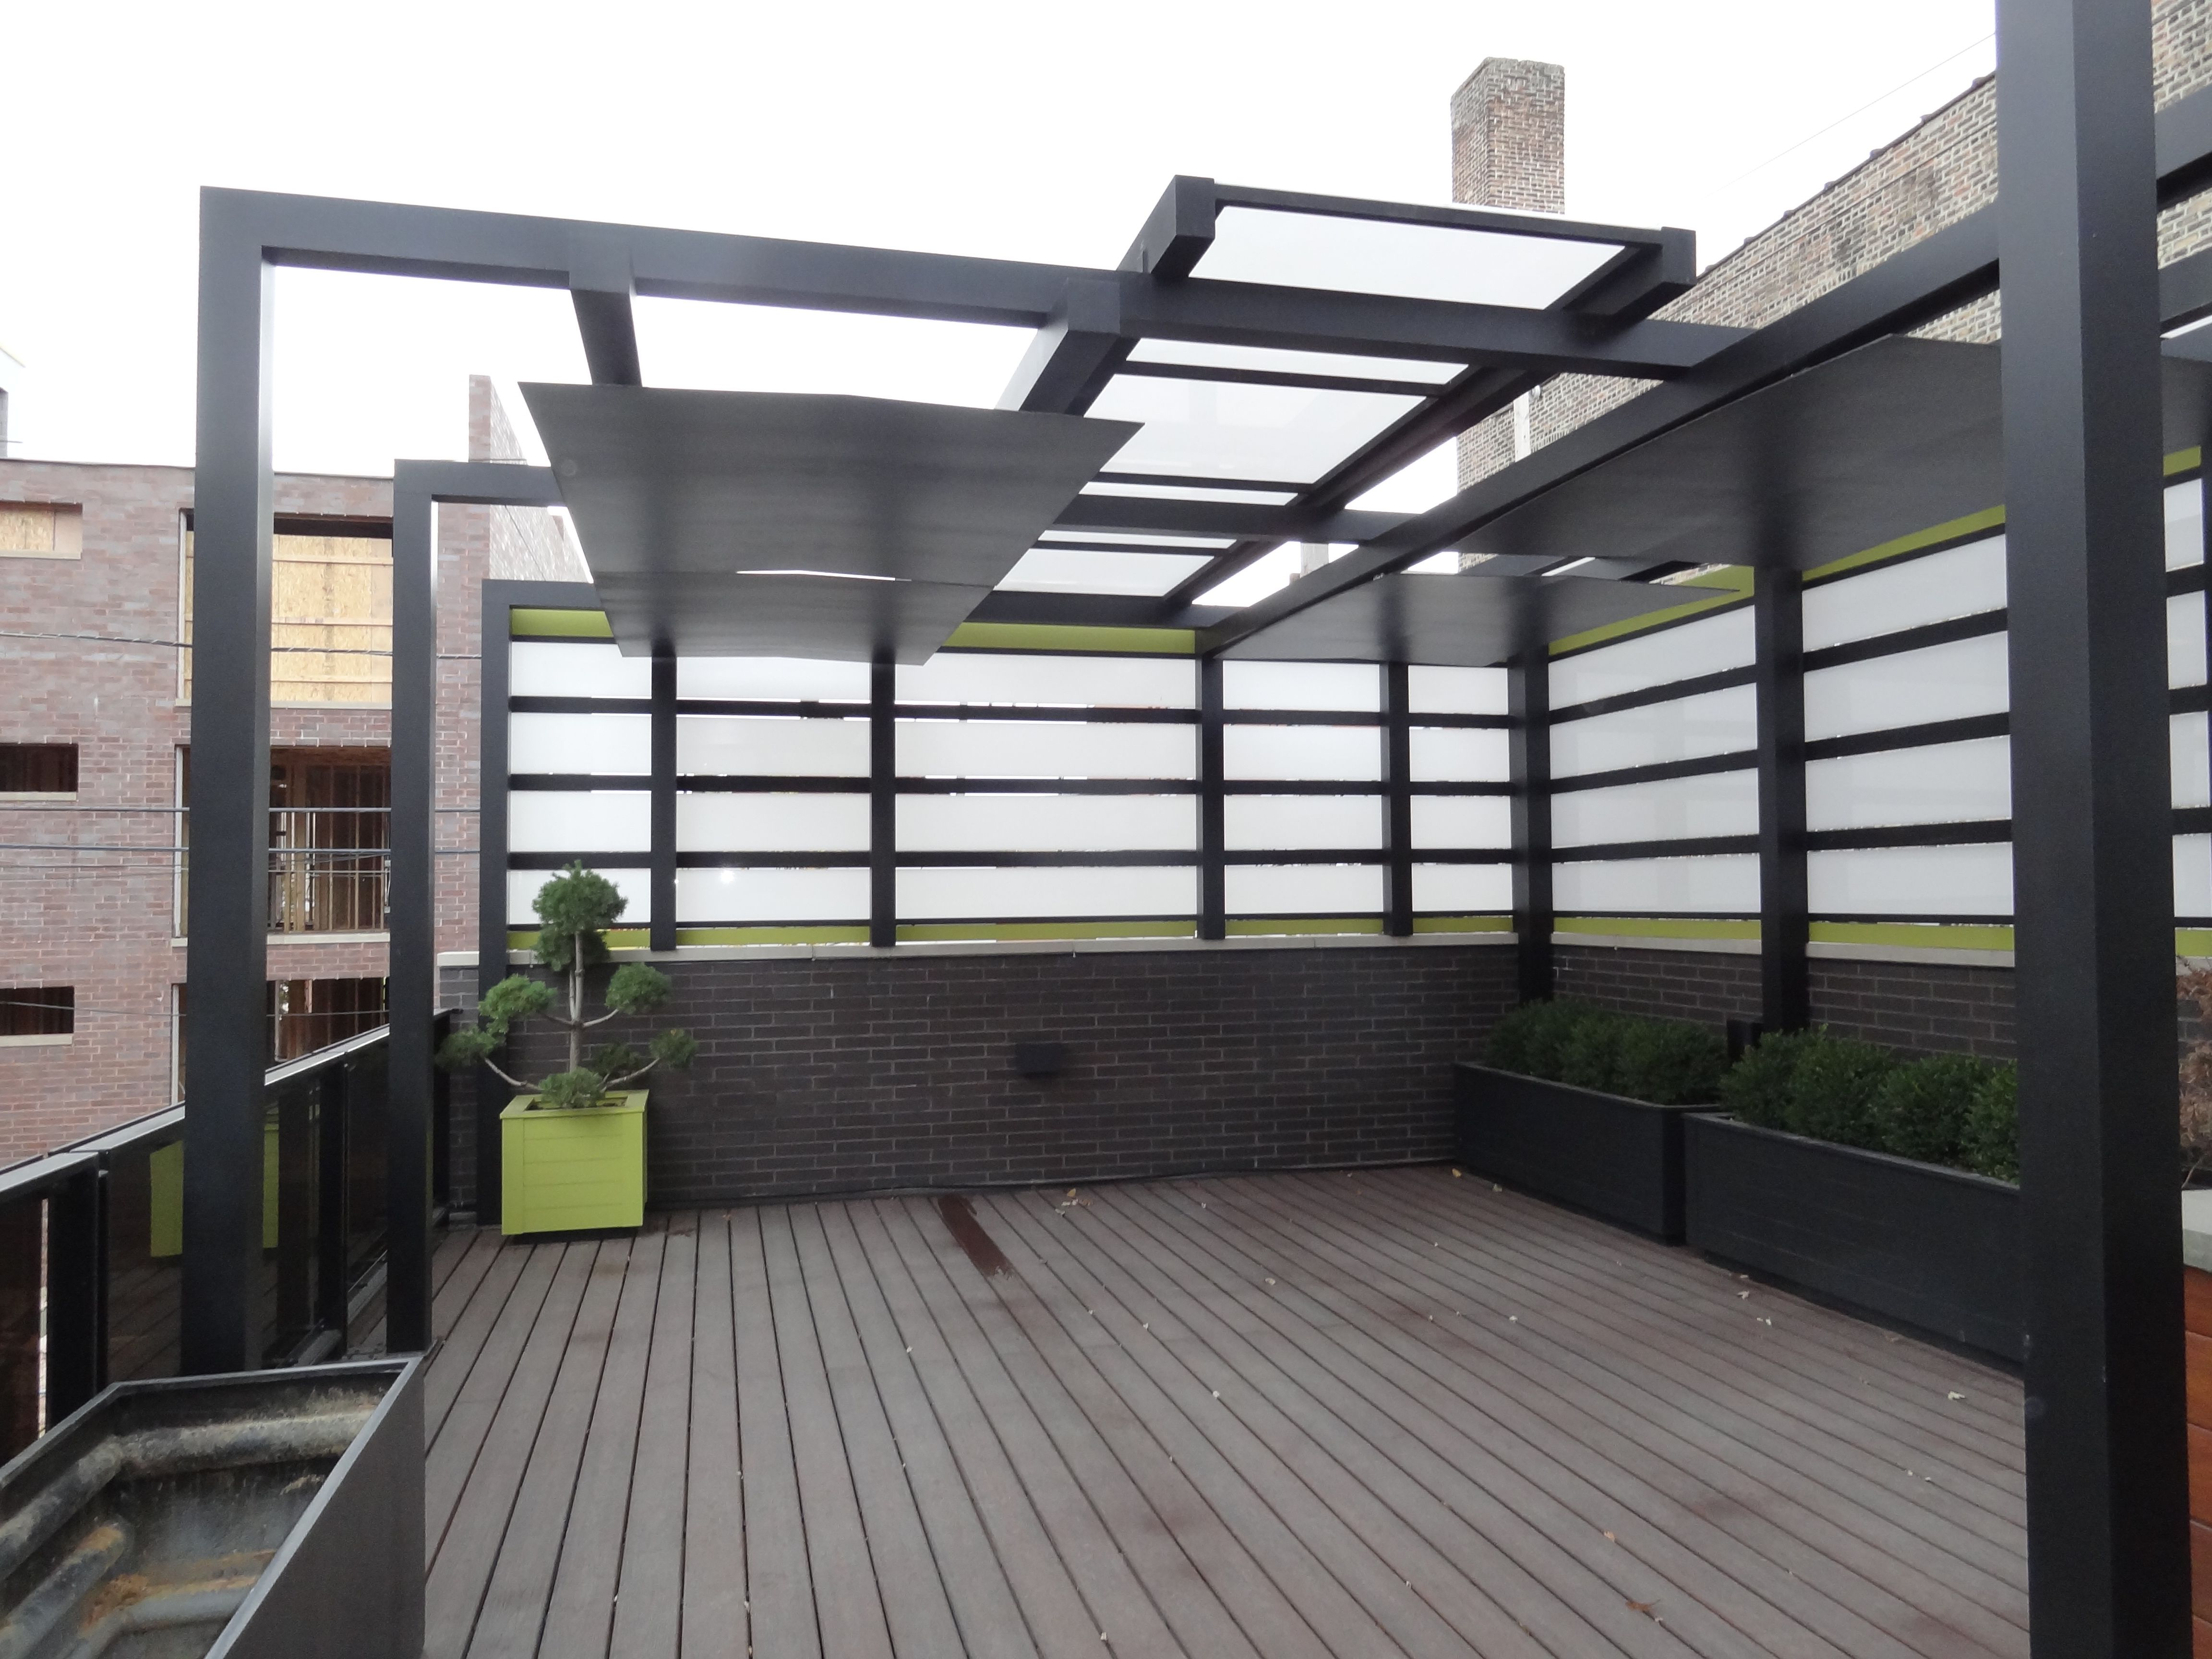 metal pergola roof top privacy screening urban garden landscape design topiarius. Black Bedroom Furniture Sets. Home Design Ideas